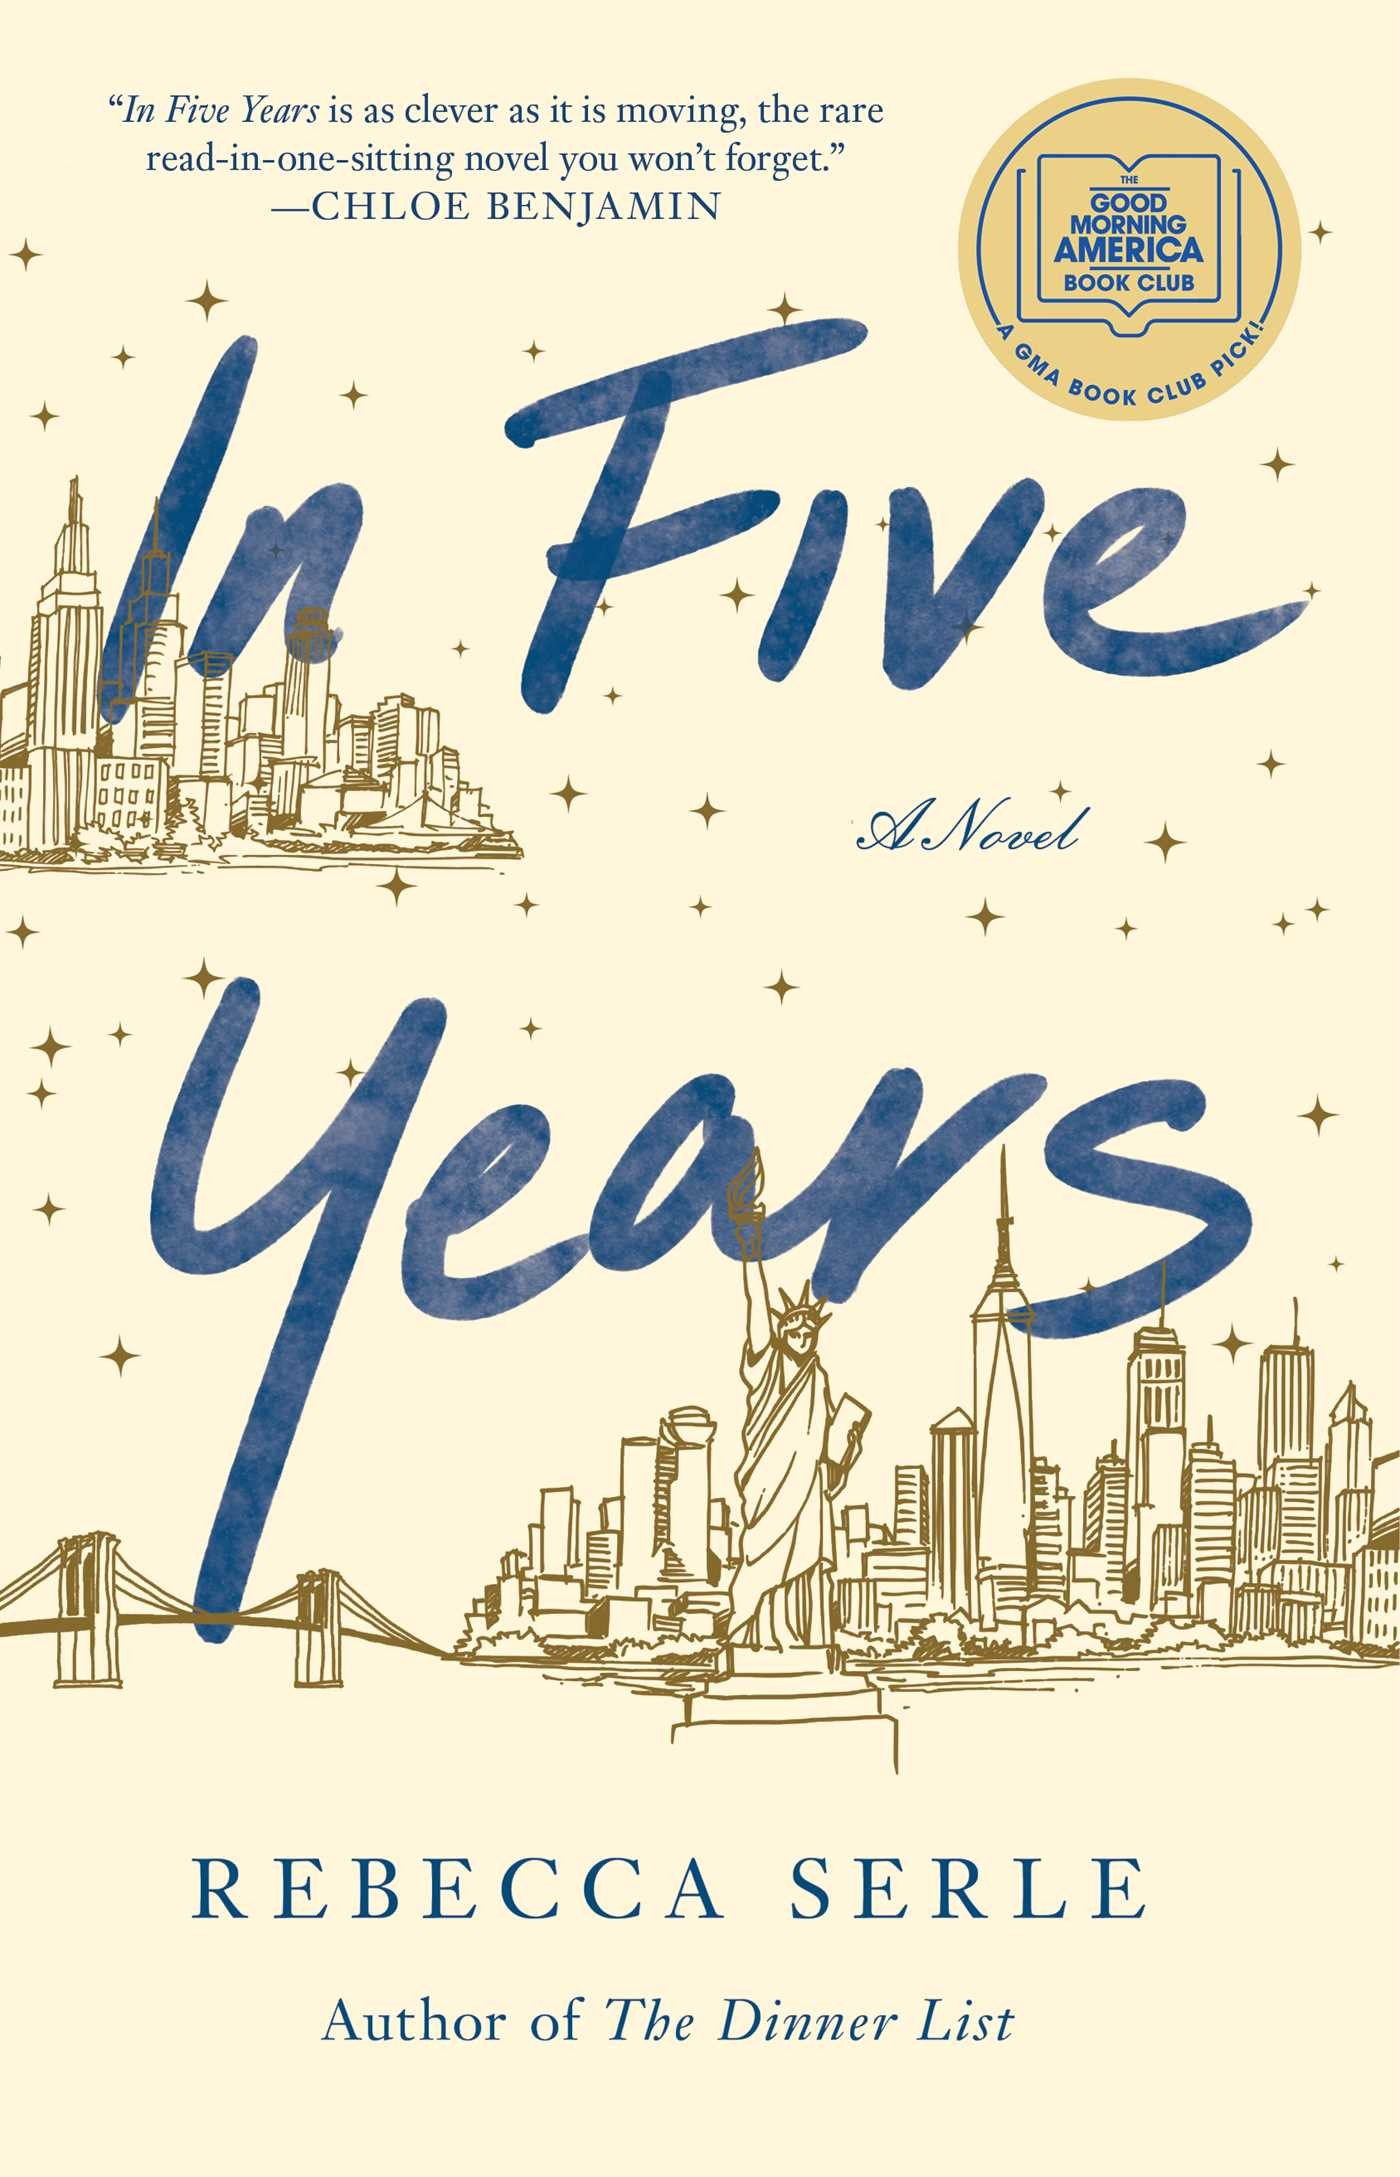 In Five Years   Book by Rebecca Serle   Official Publisher Page   Simon &  Schuster